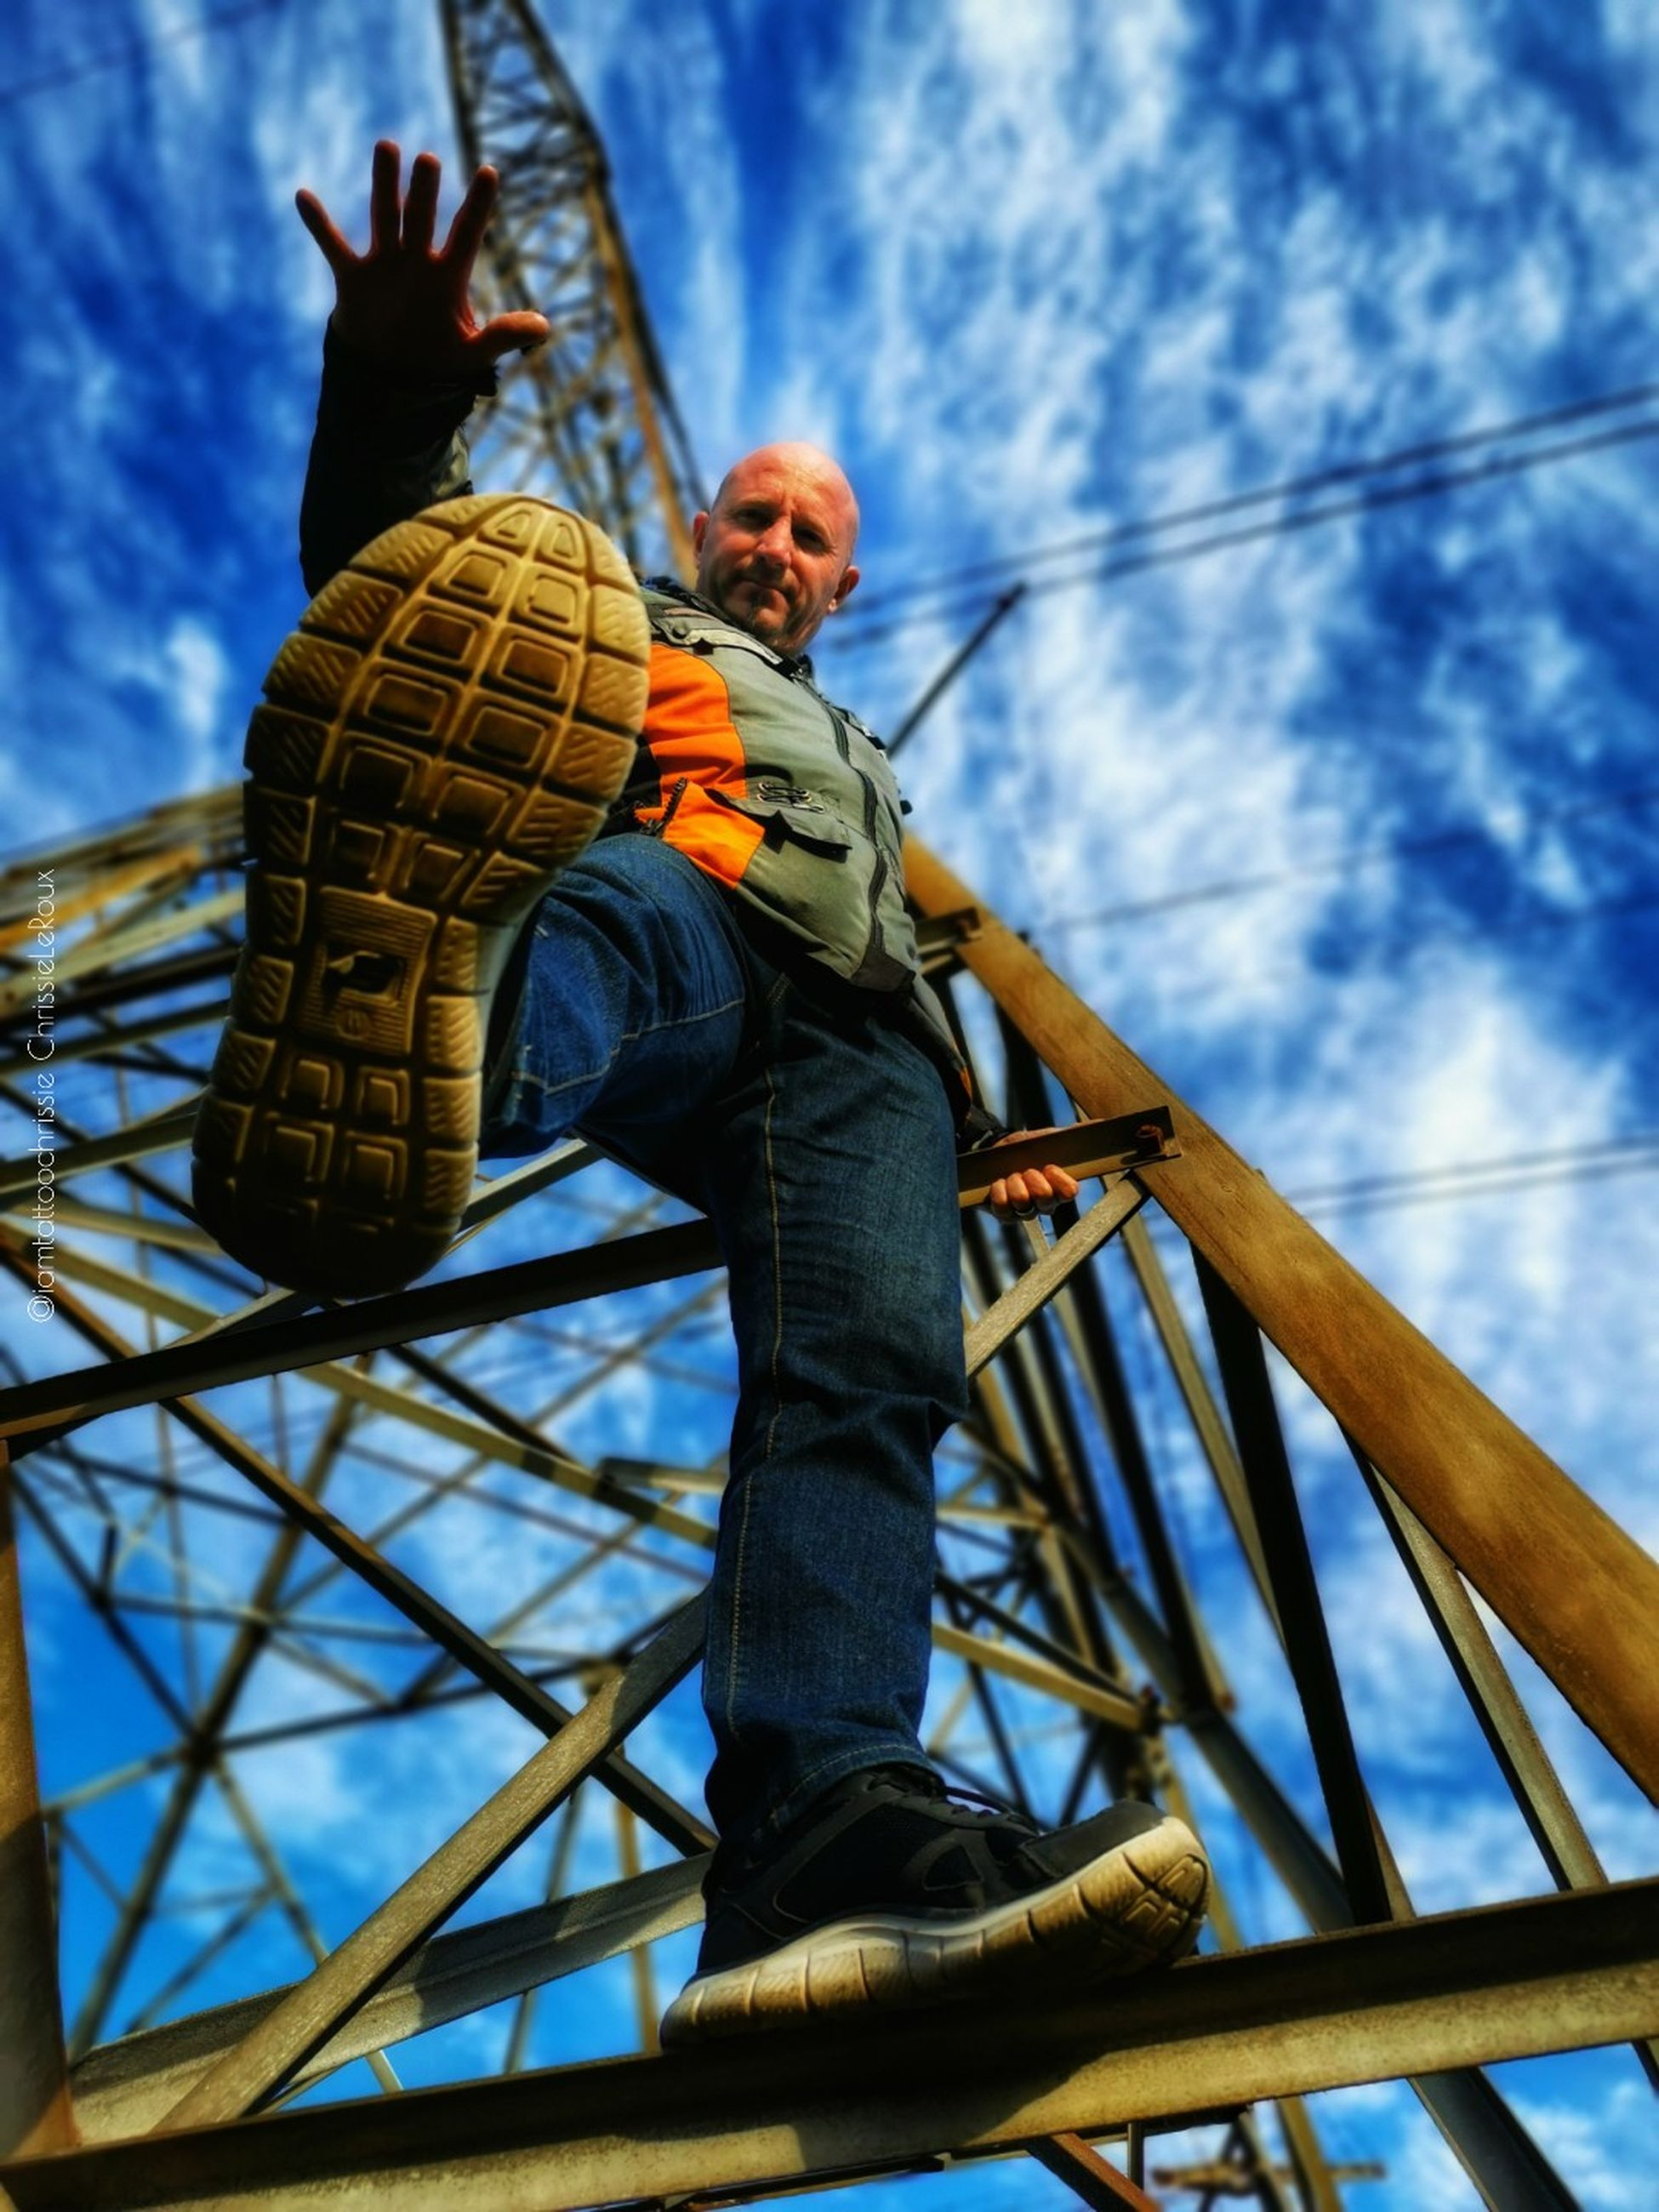 low angle view, men, one person, full length, sky, real people, day, males, leisure activity, lifestyles, cloud - sky, clothing, nature, blue, casual clothing, outdoors, standing, rope, warm clothing